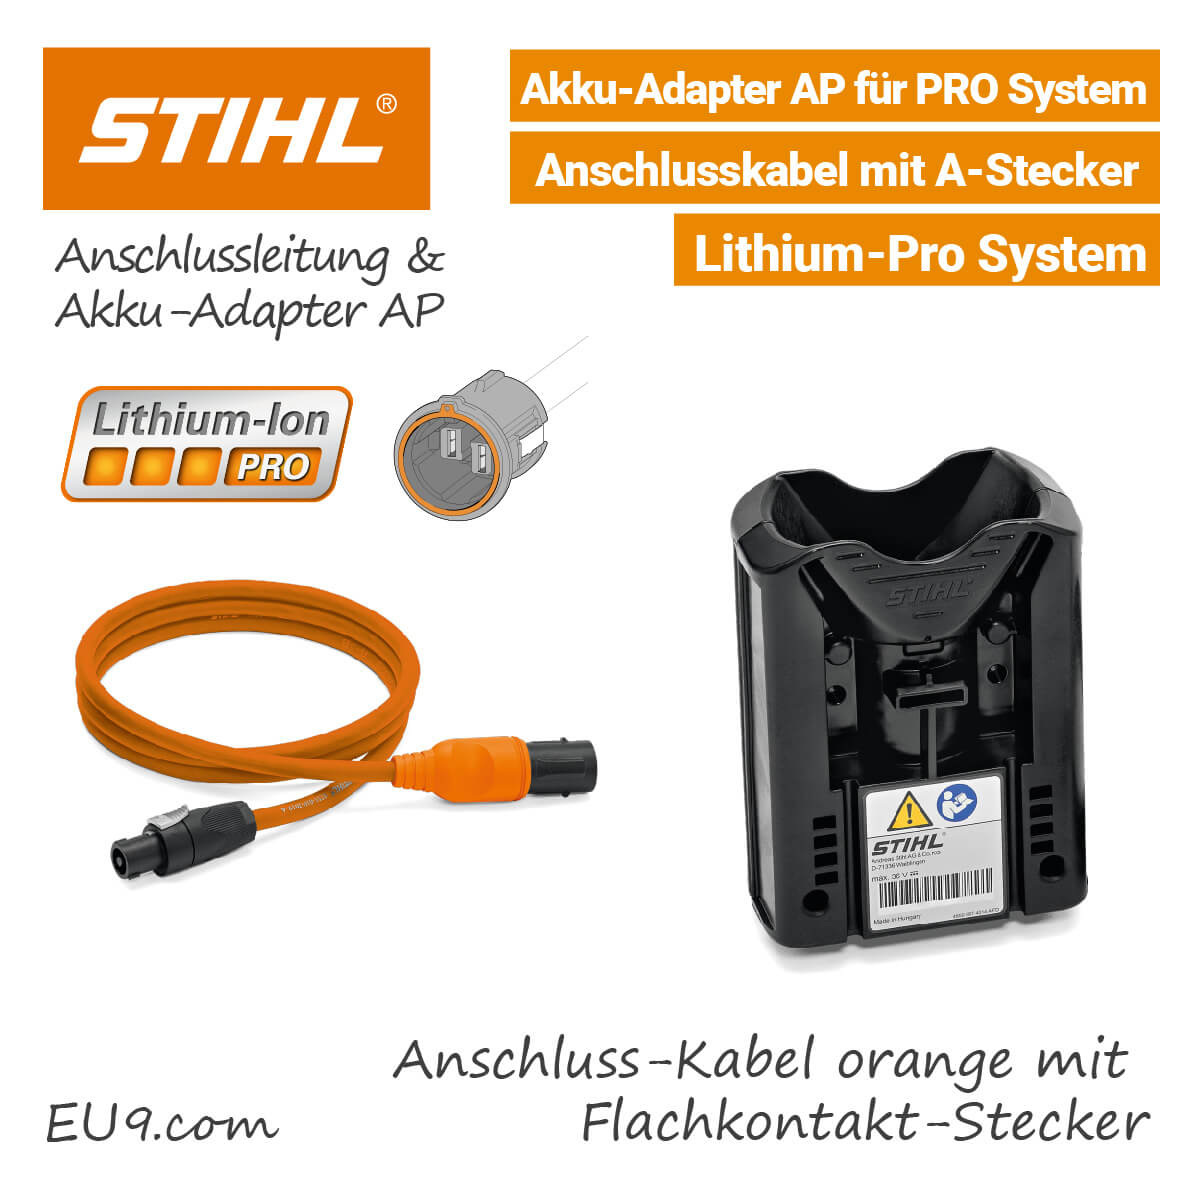 stihl anschlussleitung orange akku adapter ap pro akkusystem. Black Bedroom Furniture Sets. Home Design Ideas